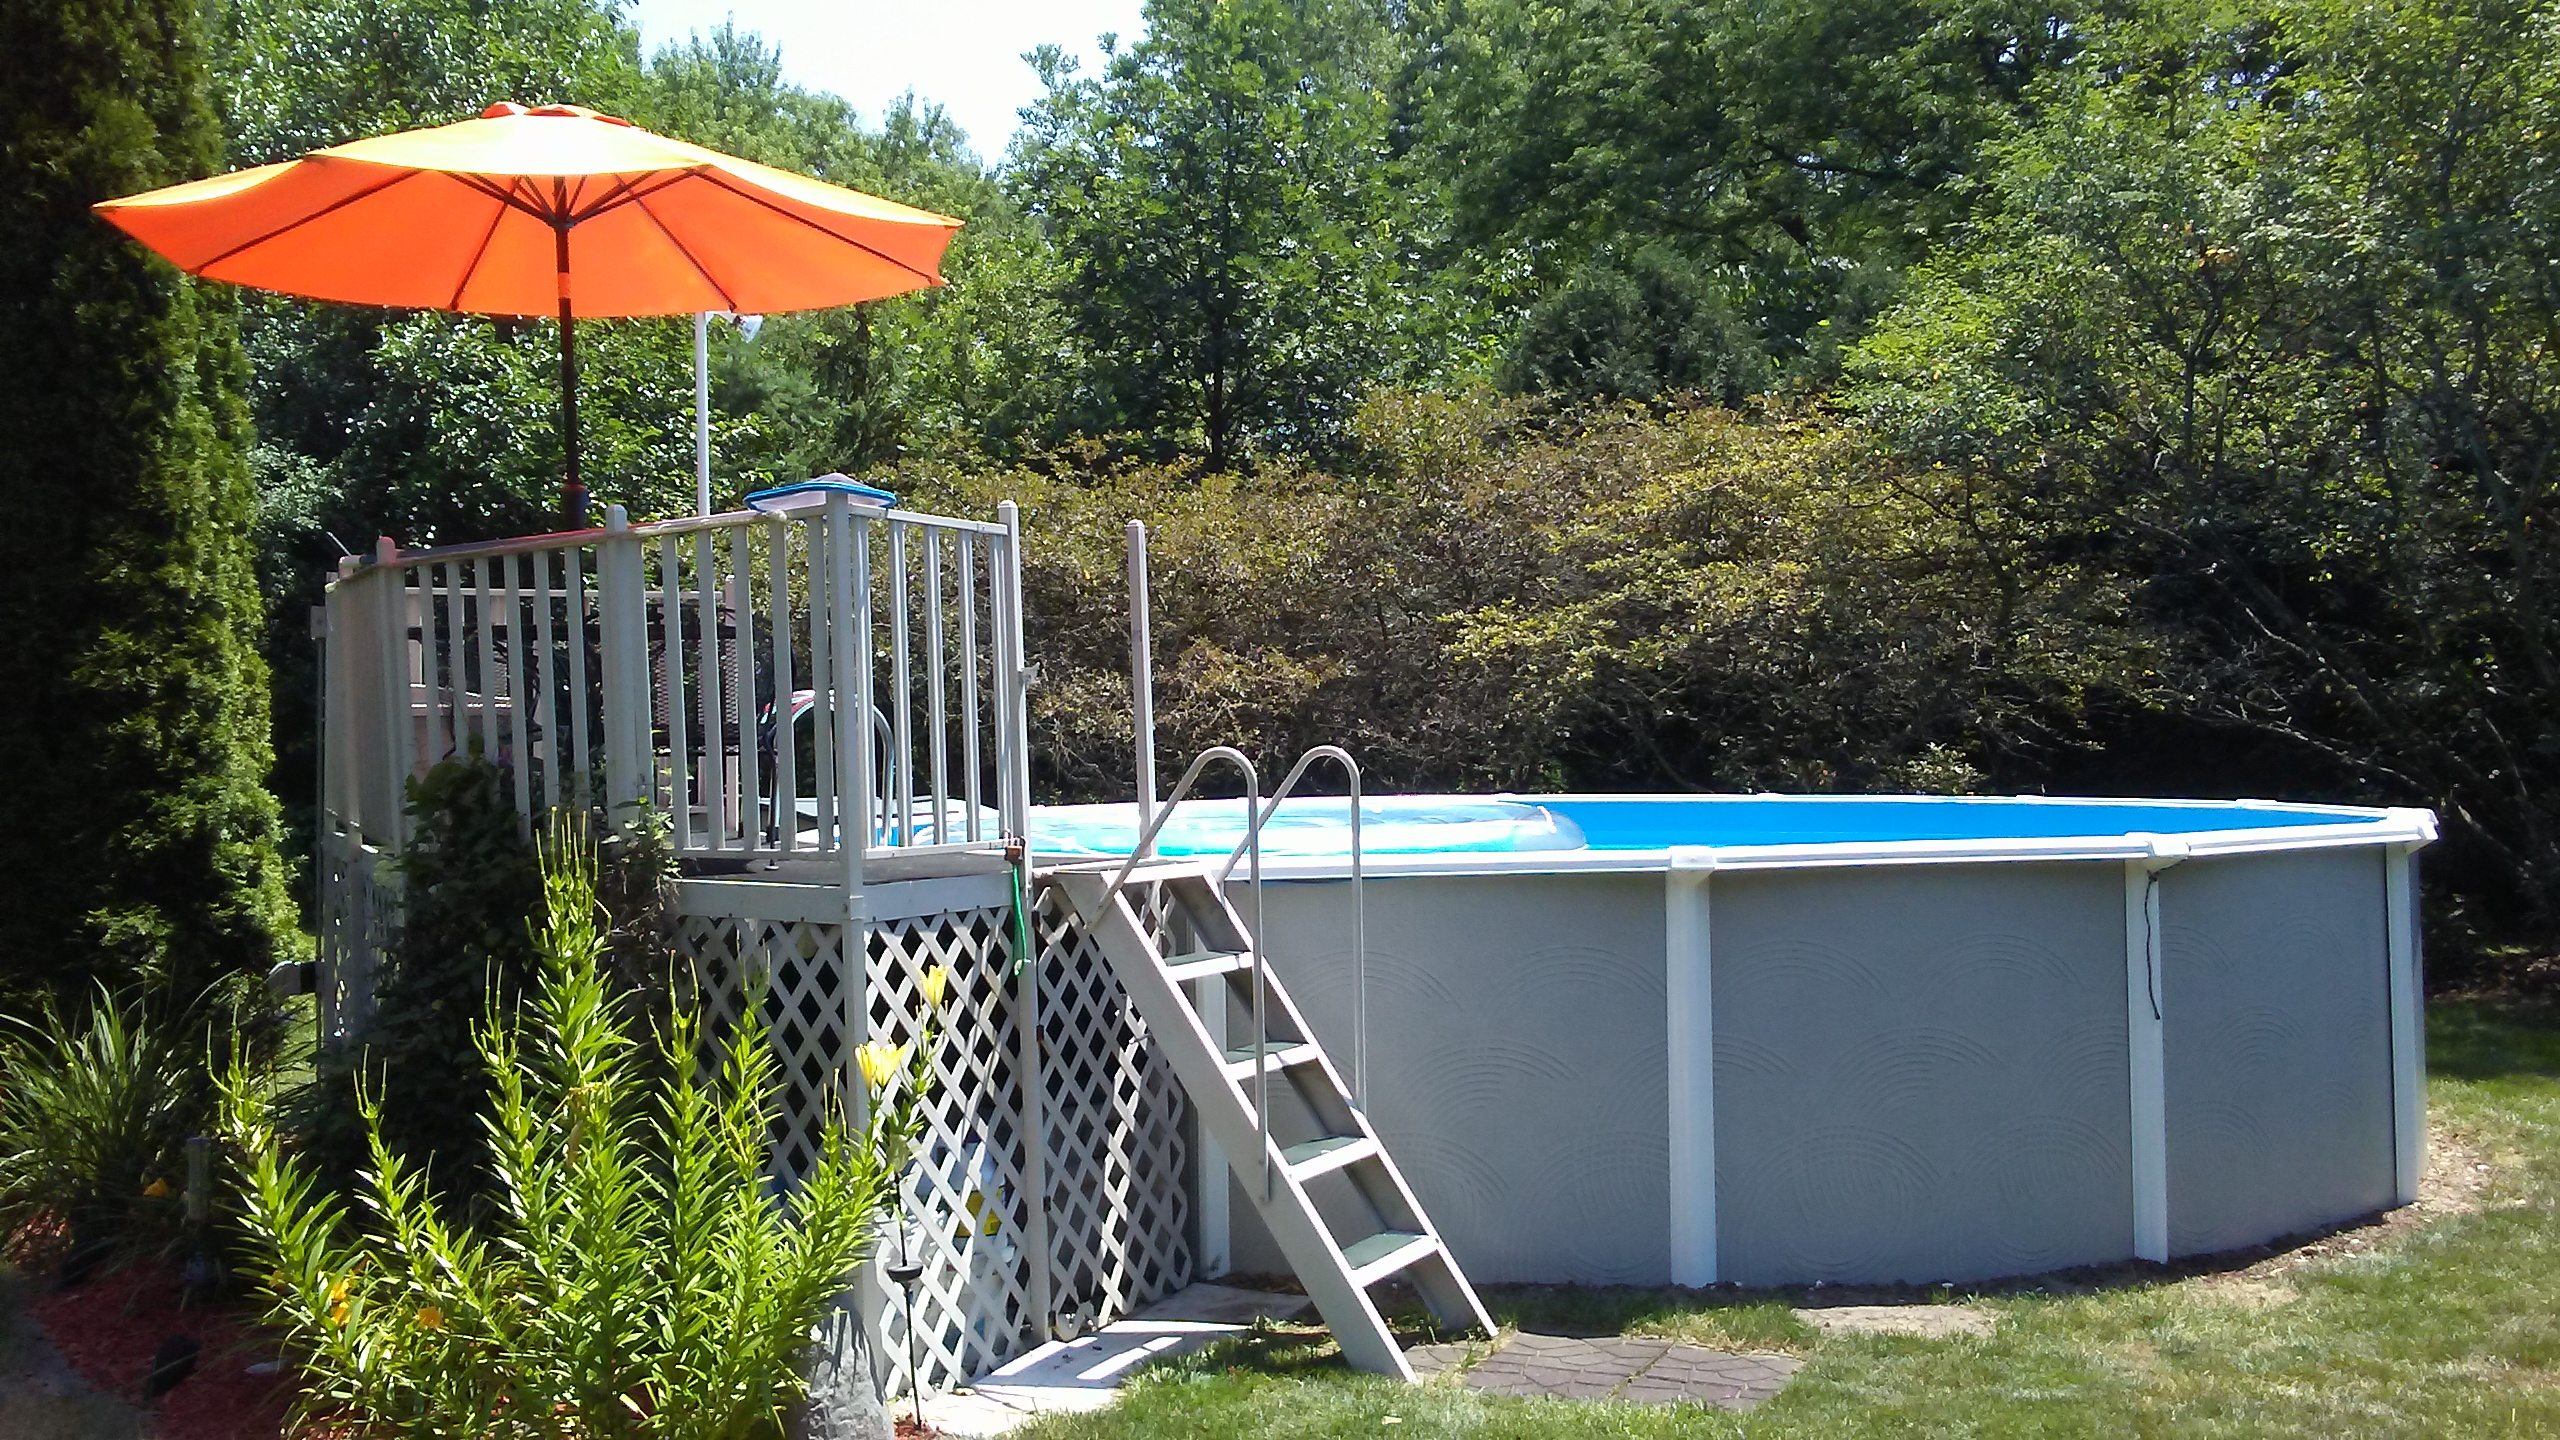 How Much Does An Above Ground Pool Cost to Build?